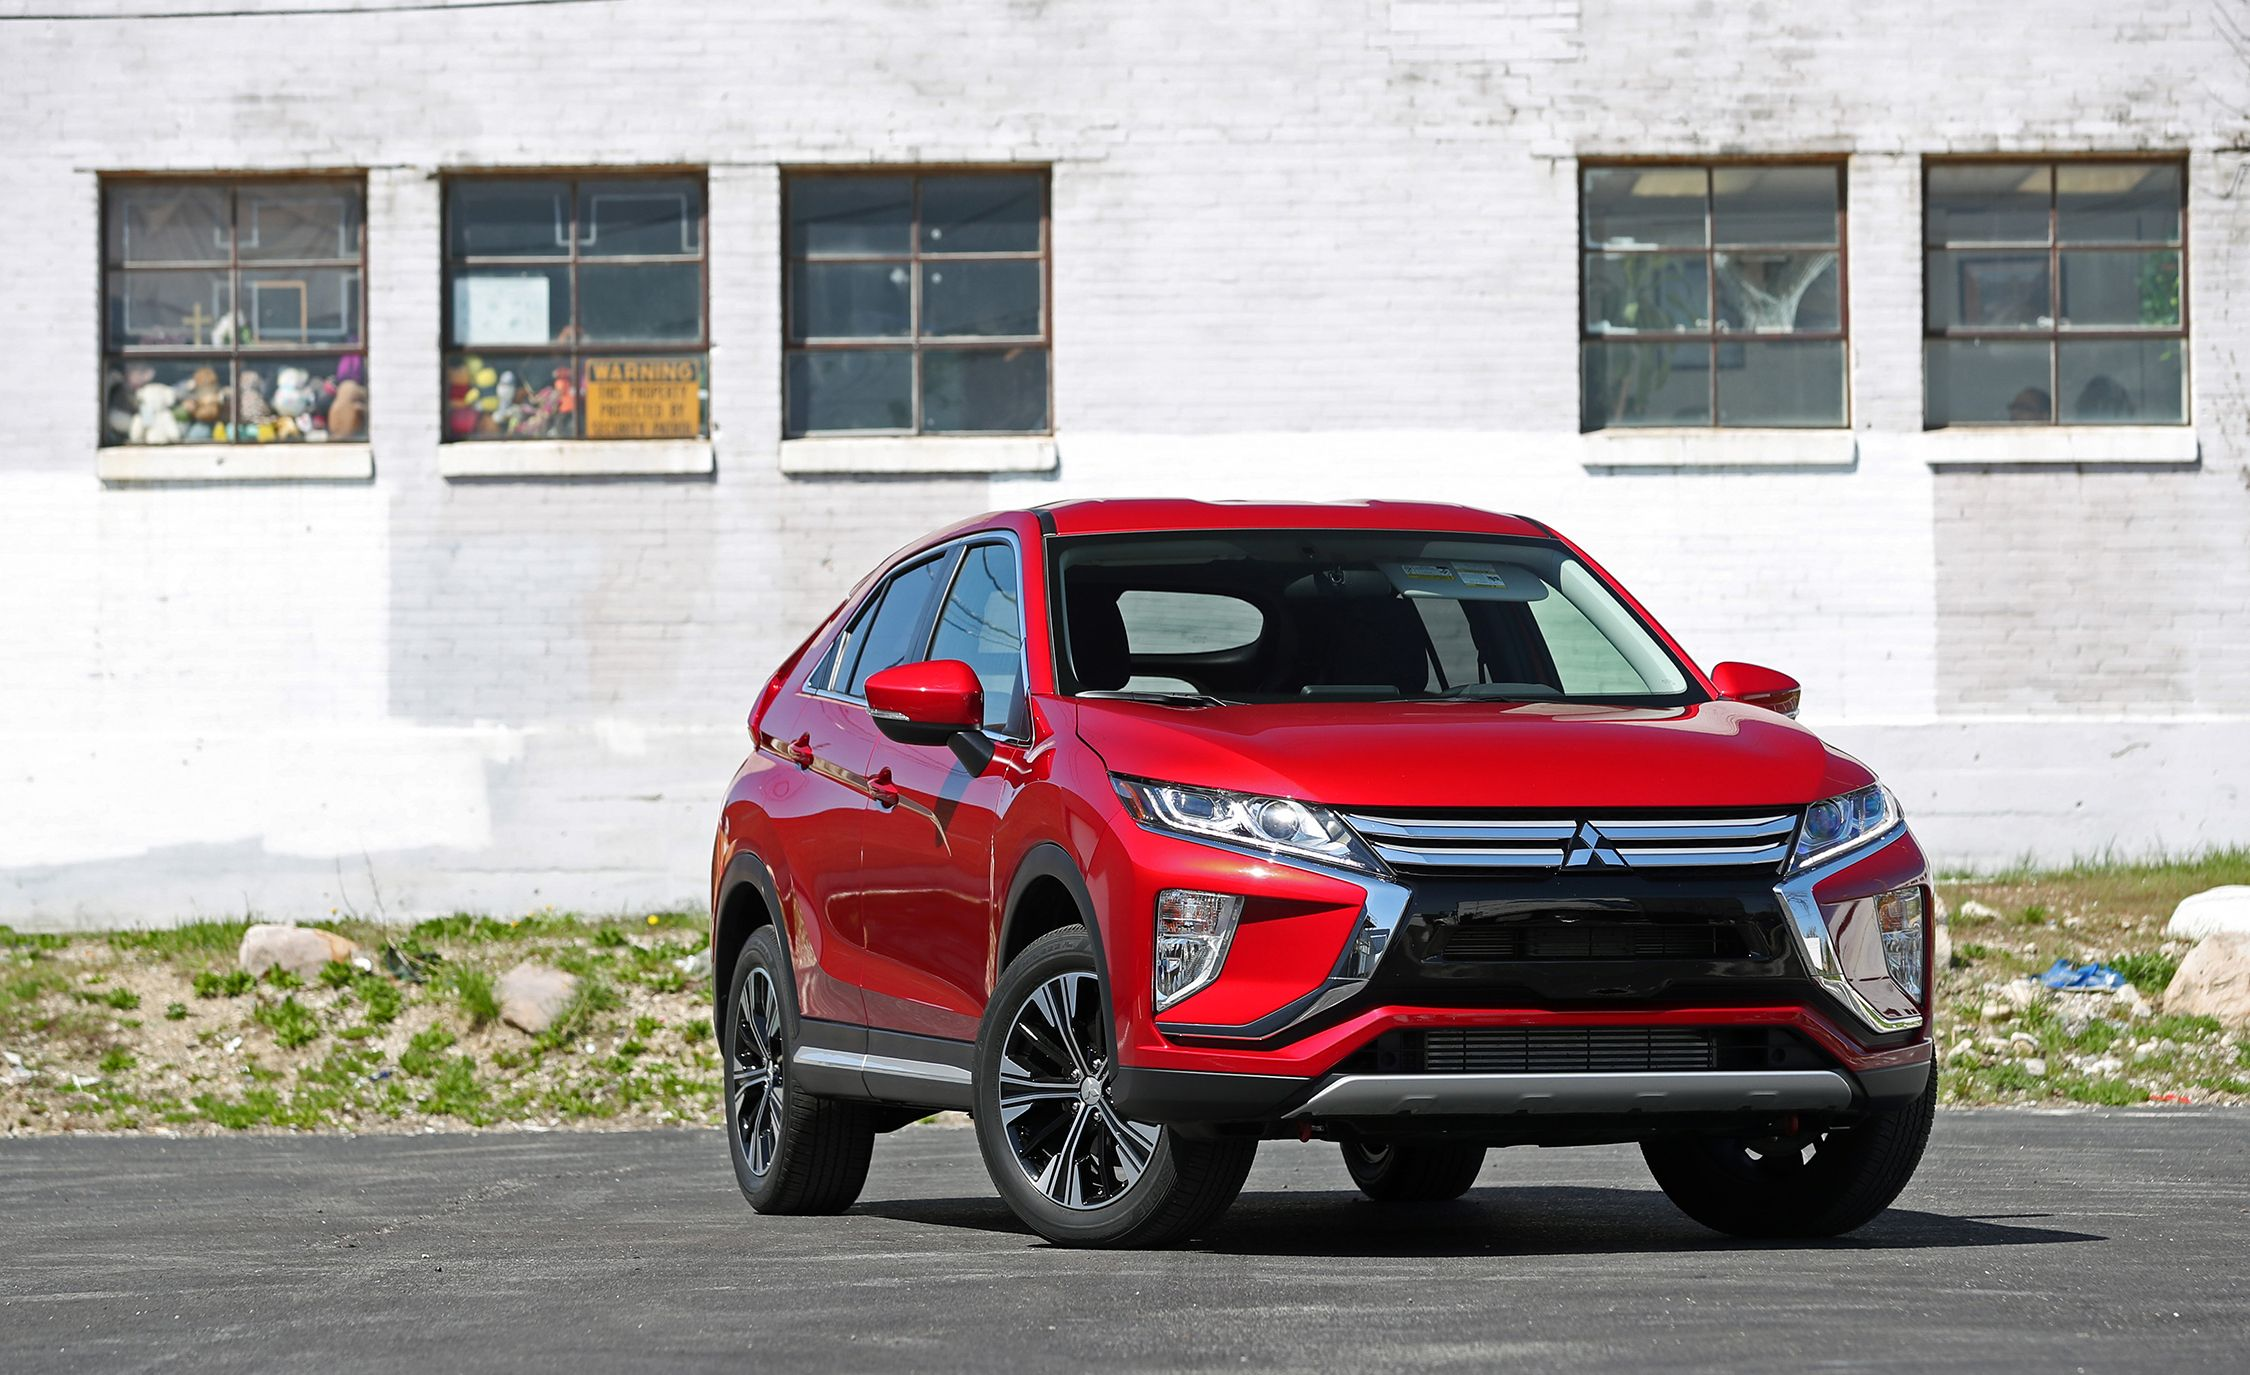 Mitsubishi Eclipse Cross Reviews Price Transmission Problems Photos And Specs Car Driver